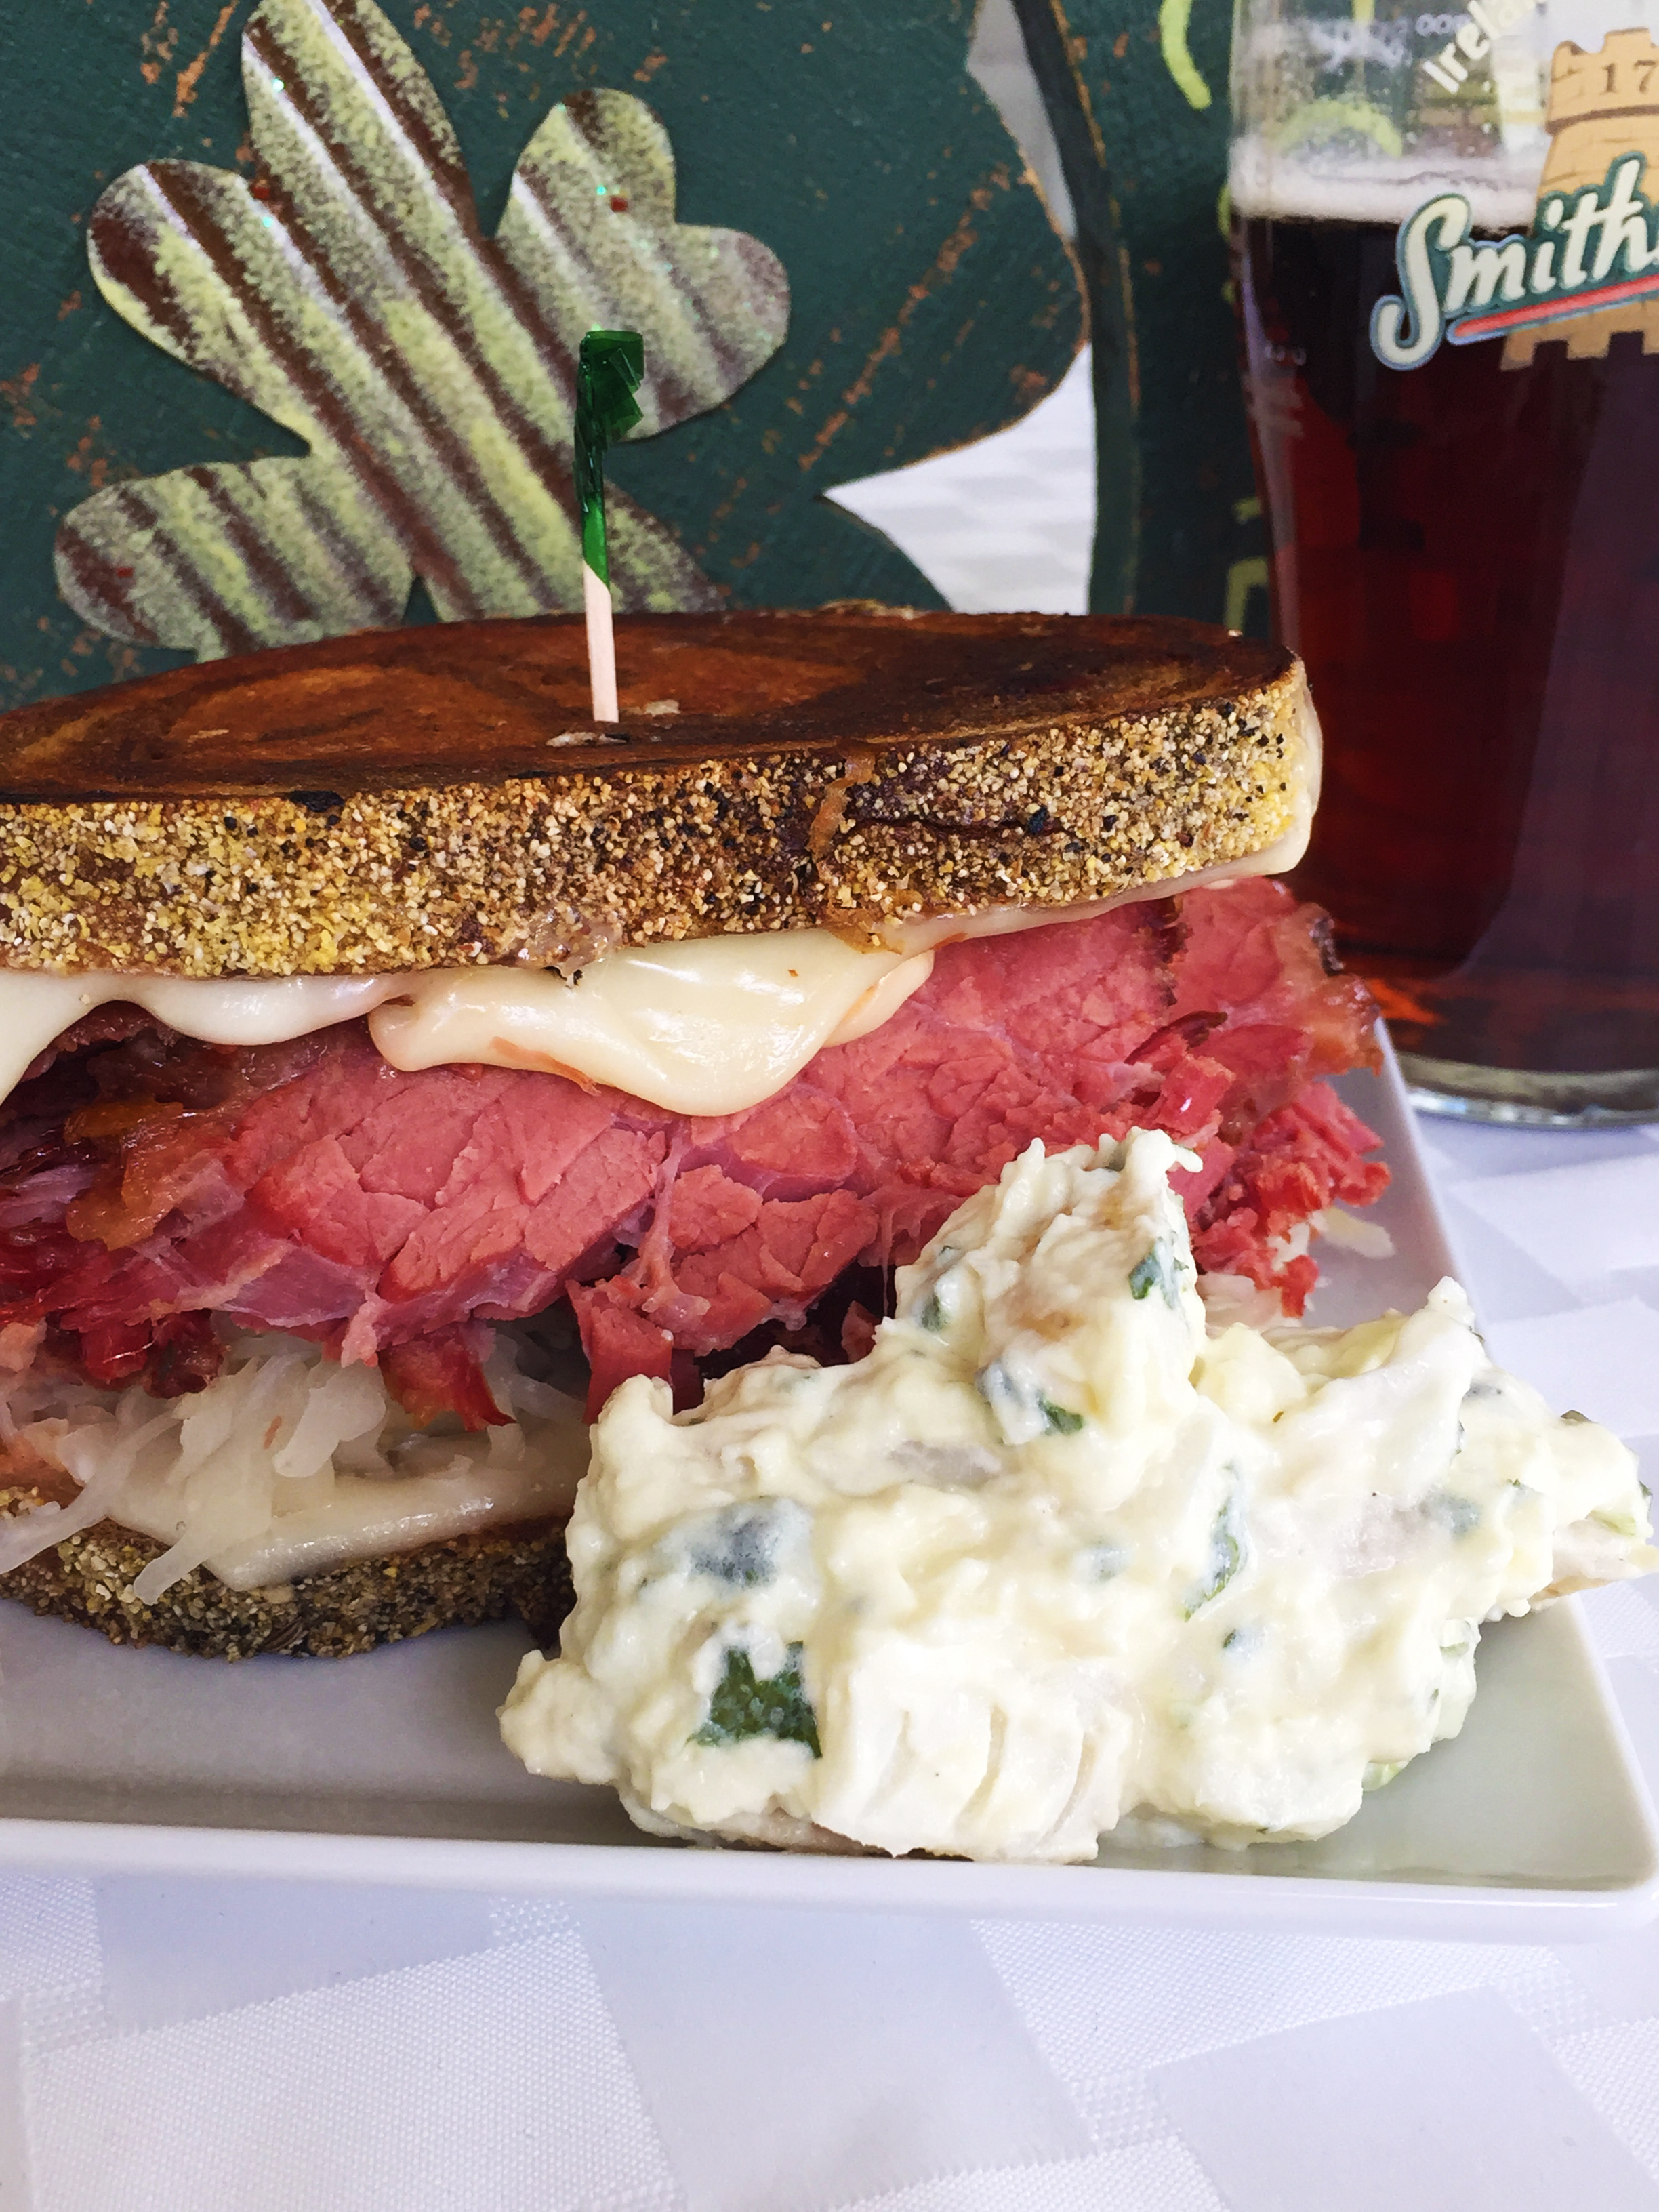 Corned Beef Reuben on marble rye with Russian dressing, Swiss cheese, and Boar's Head sauerkraut.